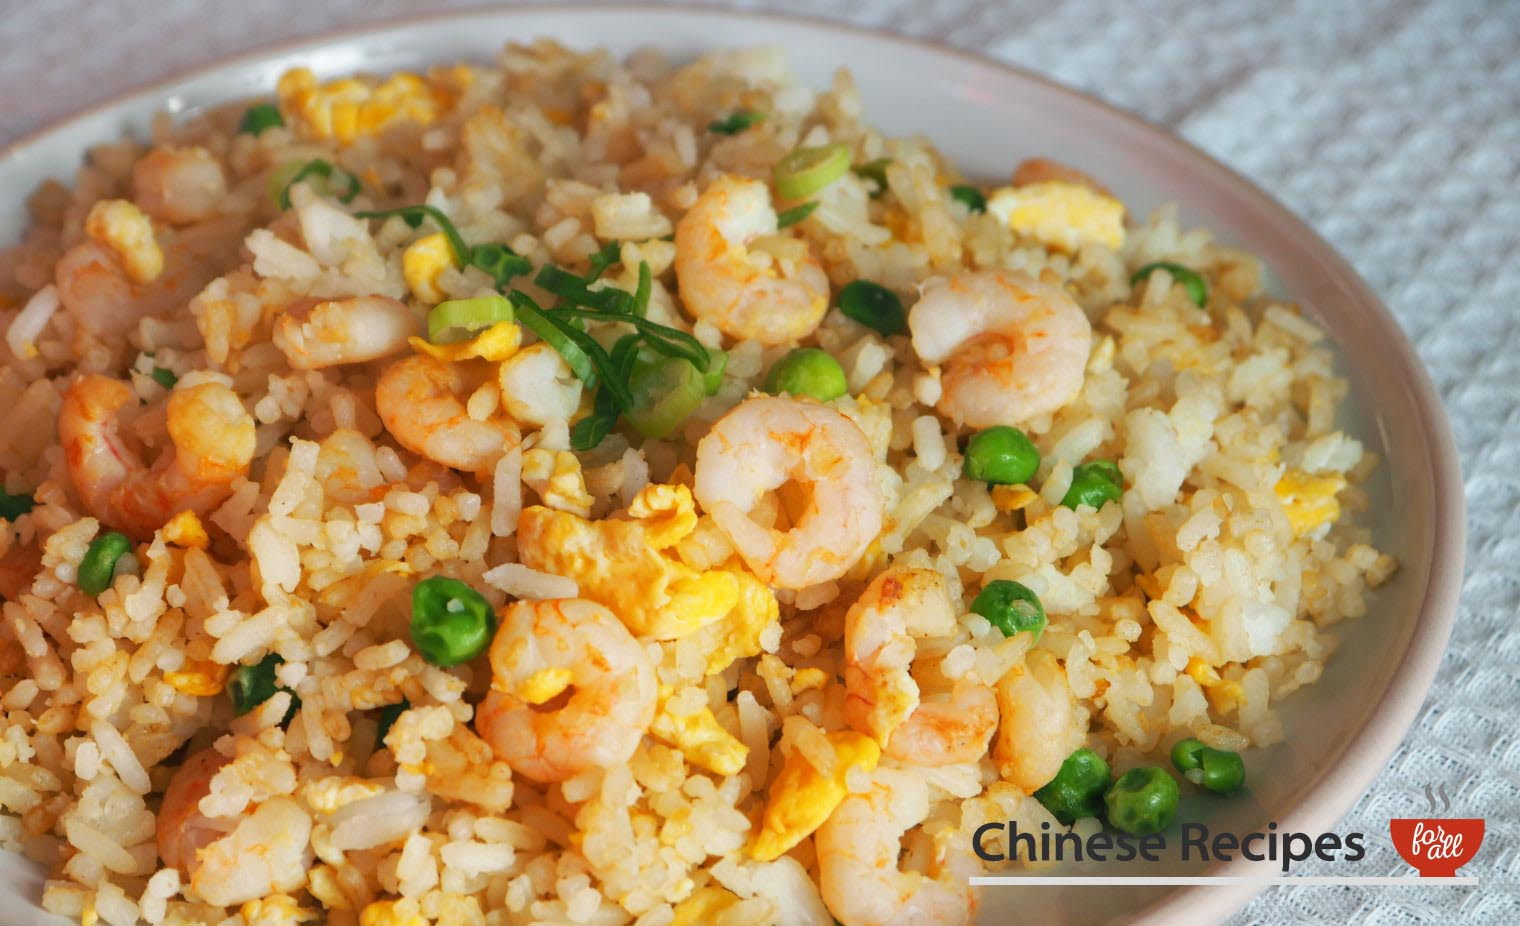 Shrimp Fried Rice - Chinese Recipes For All